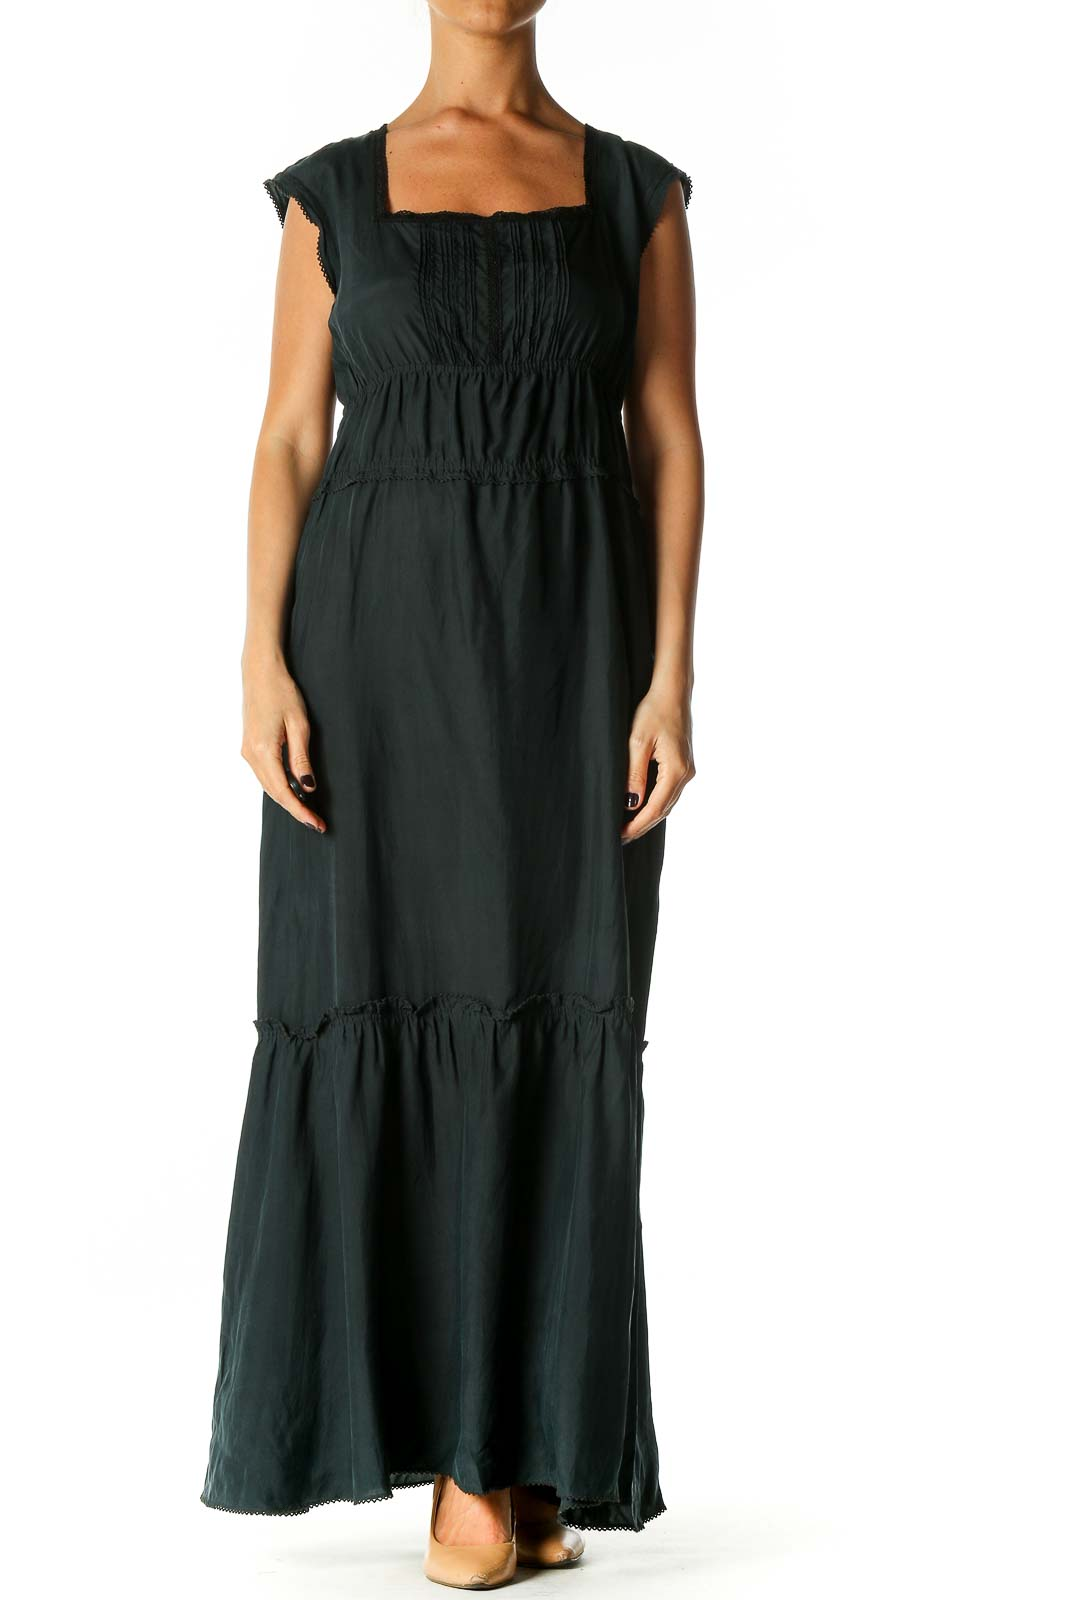 Green Solid Bohemian A-Line Dress Front